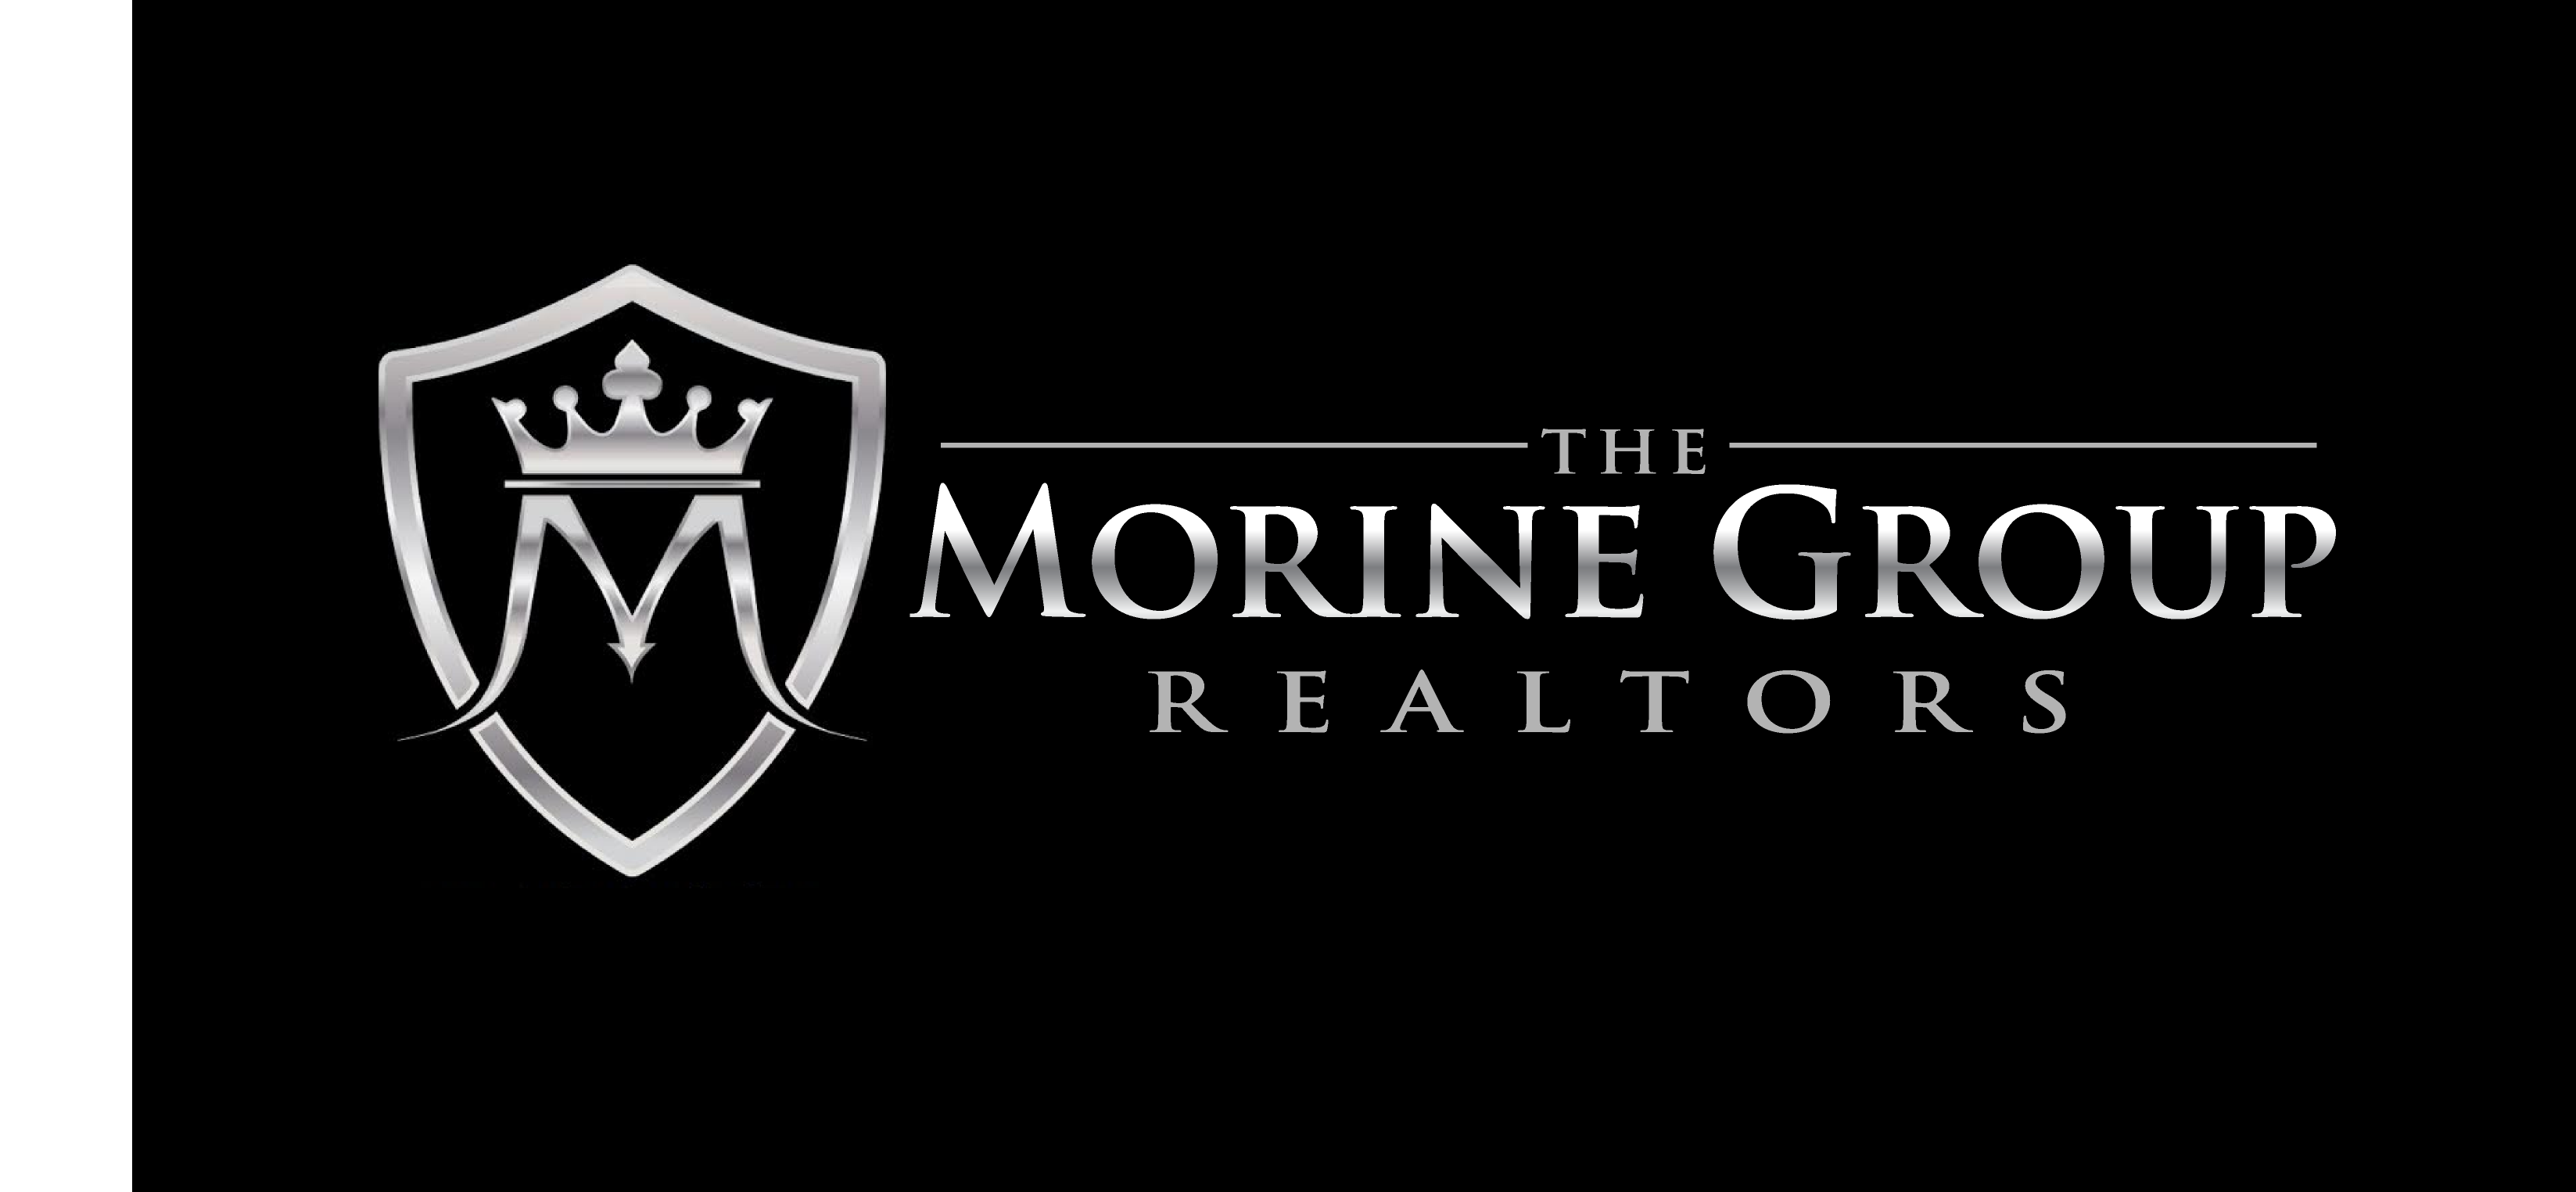 Celebrating 4 Years at The Morine Group Realtors